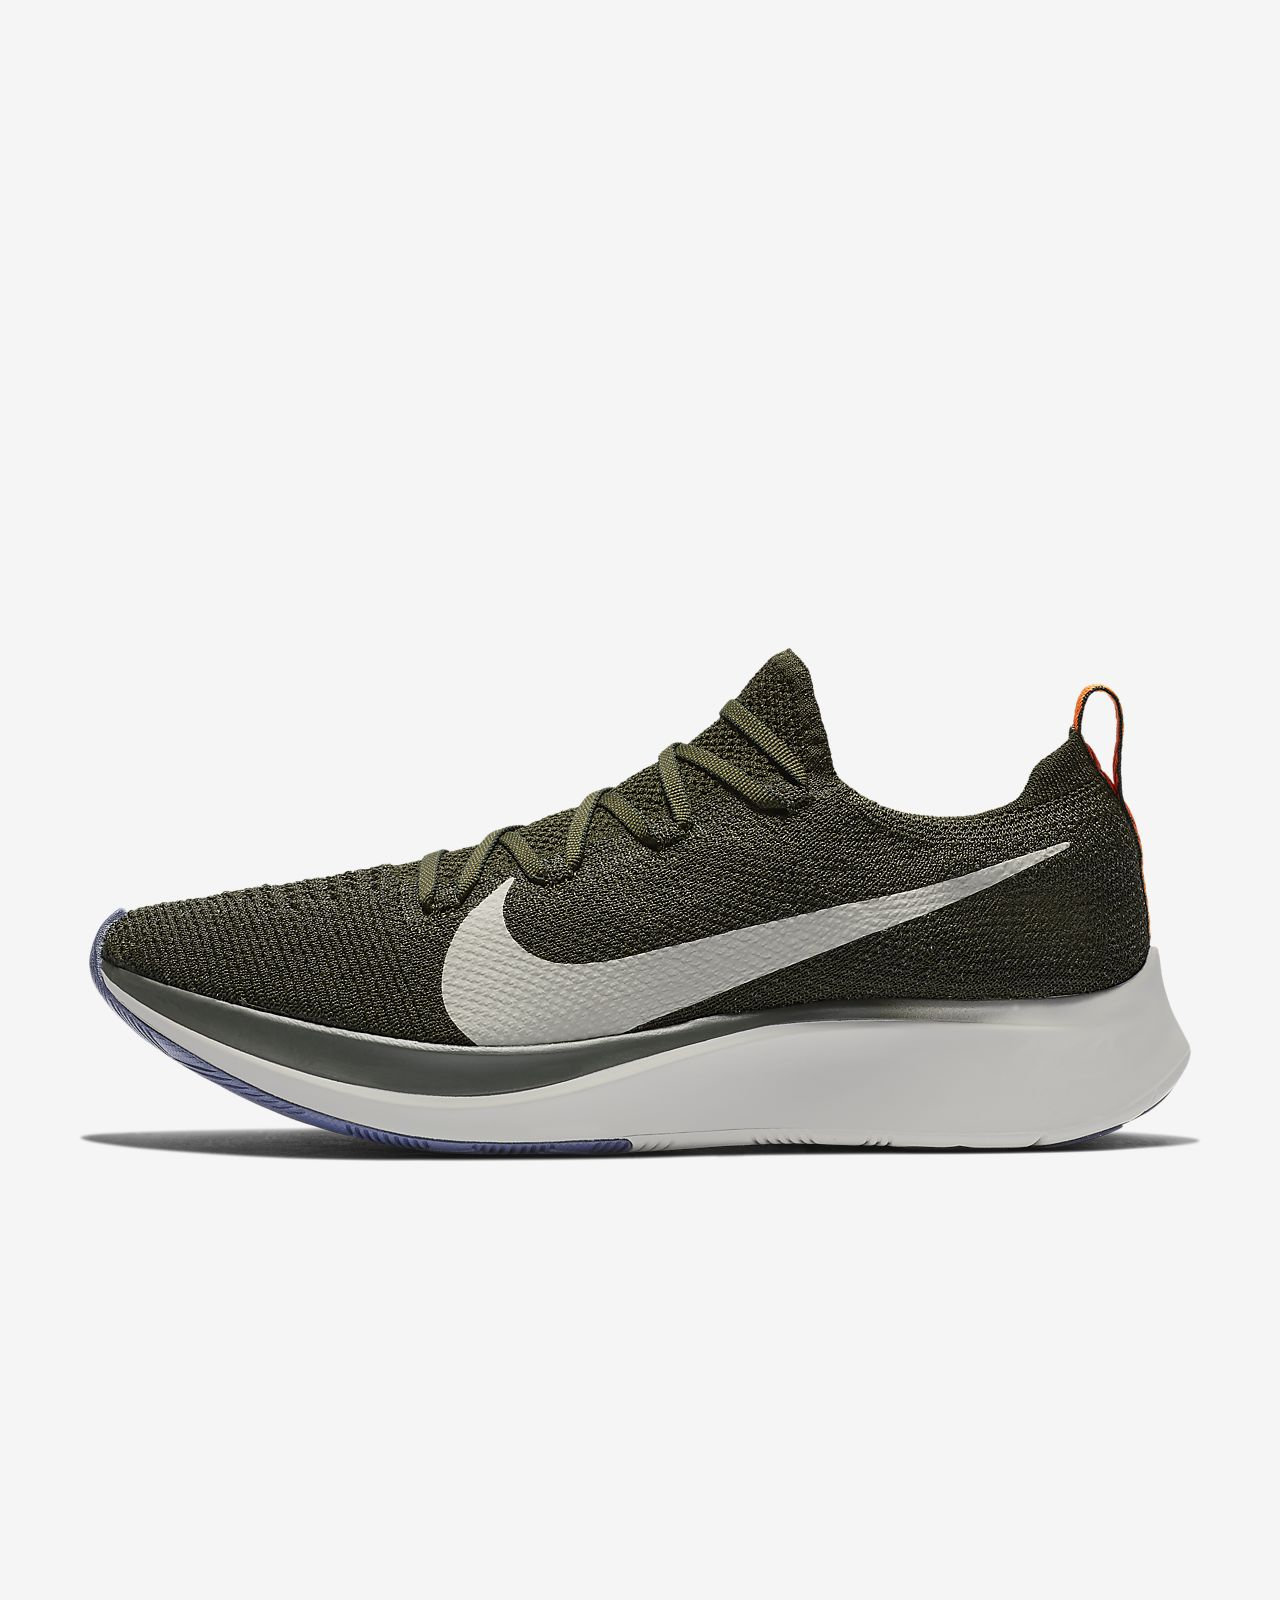 new style f971e af3e1 ... Chaussure de running Nike Zoom Fly Flyknit pour Homme